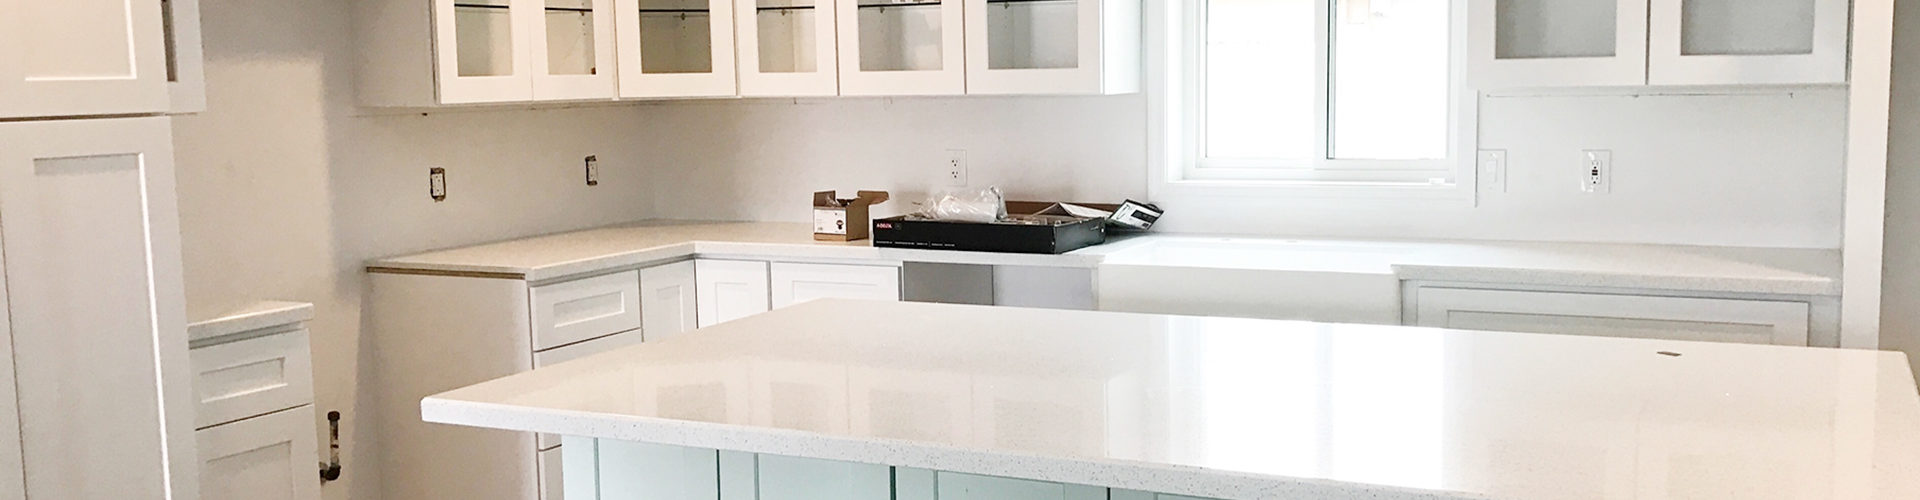 Stumped on how to choose the right countertop material for your home ...